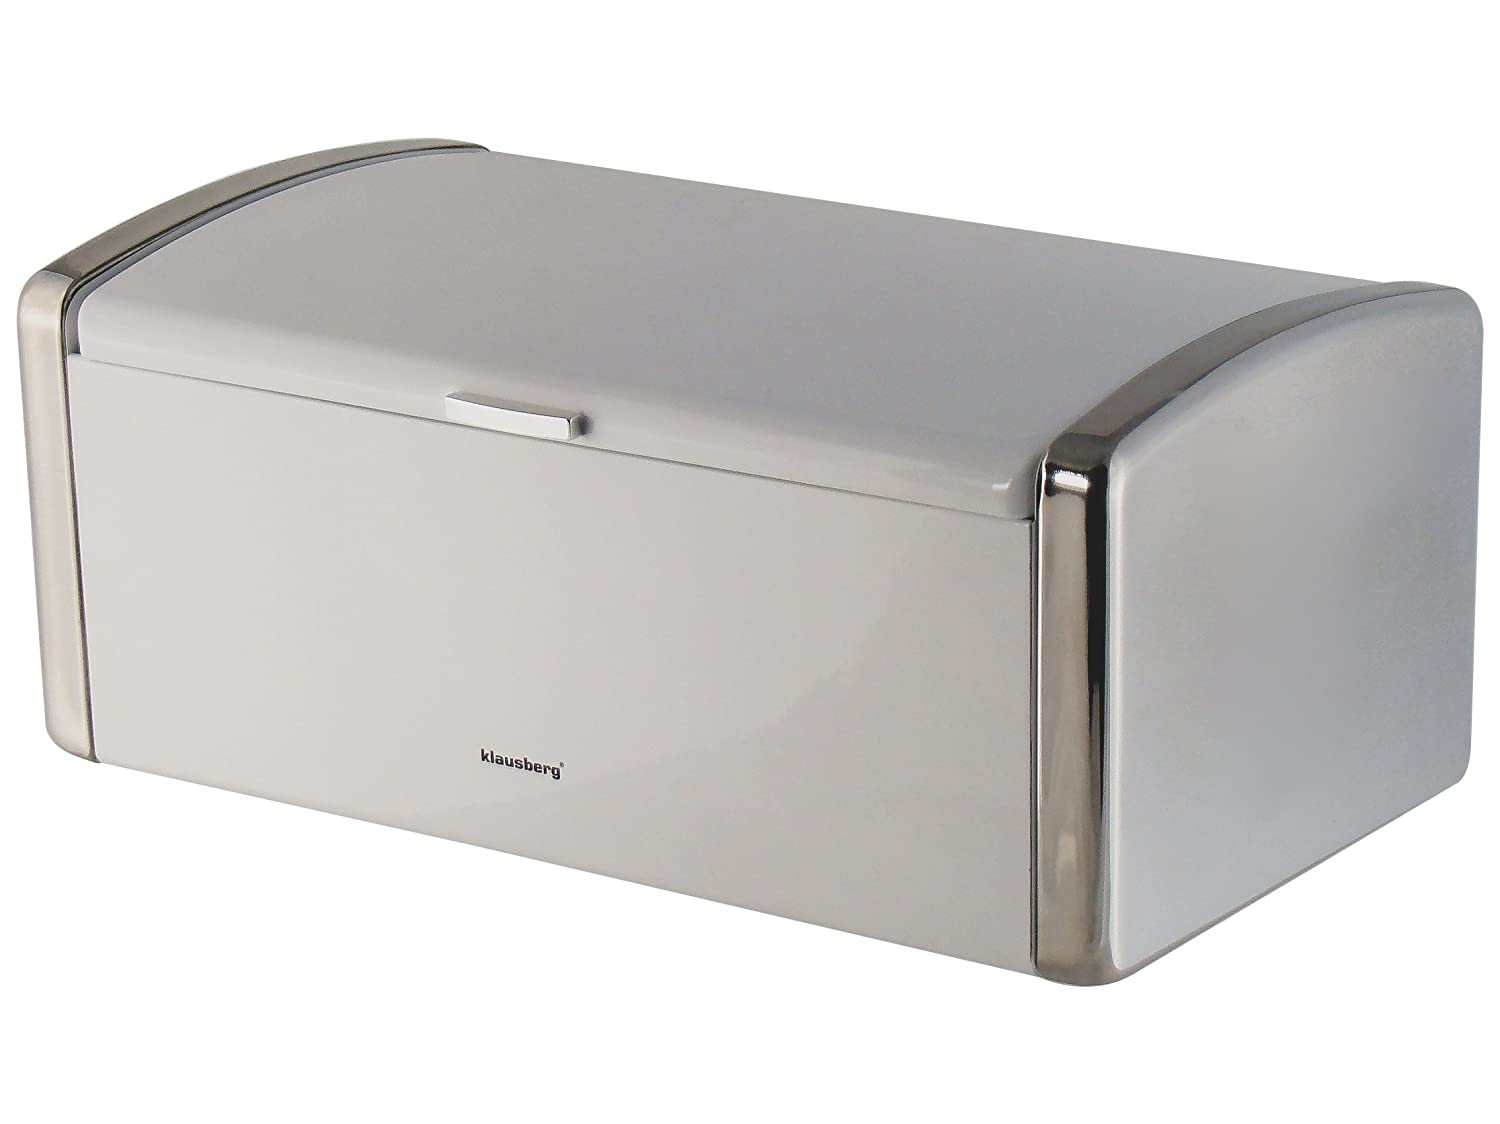 Top Quality Bread Bin Made of High Quality Steel Very Practical Ecological and Hygienic Materials (Black) KLAUSBERG iweks